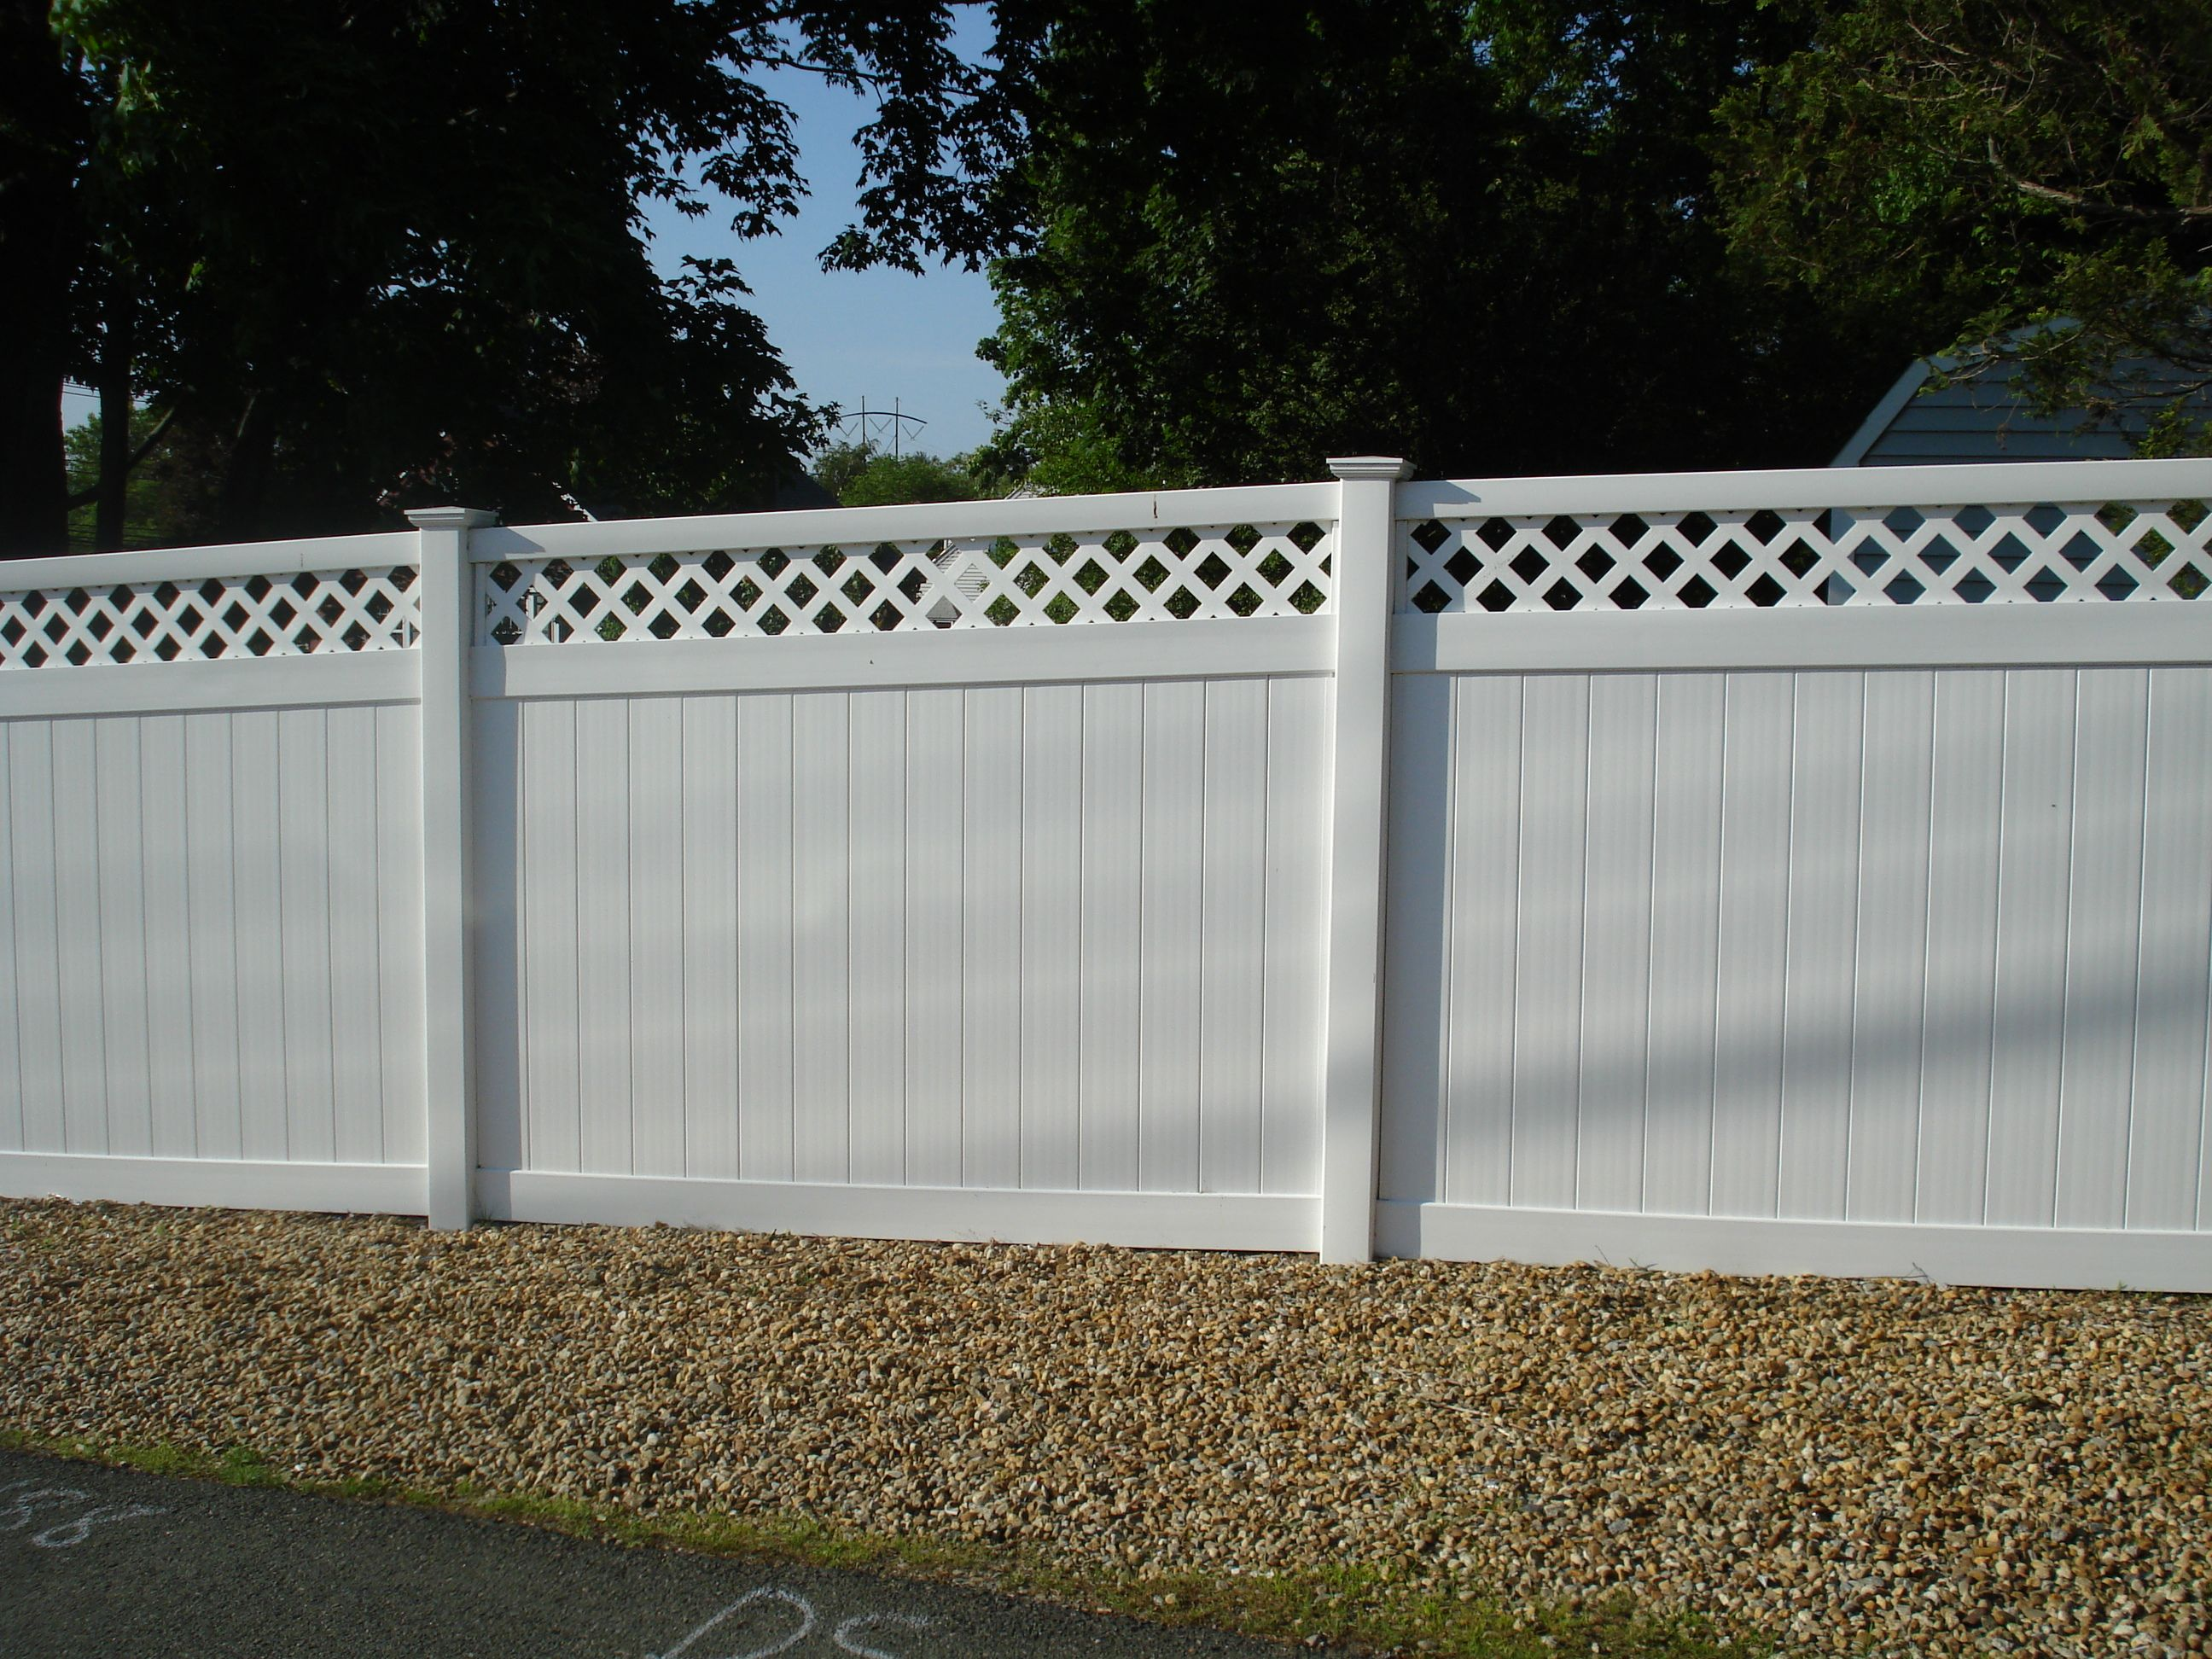 non flammable vinyl fence ,stockist of fence boards in Perth